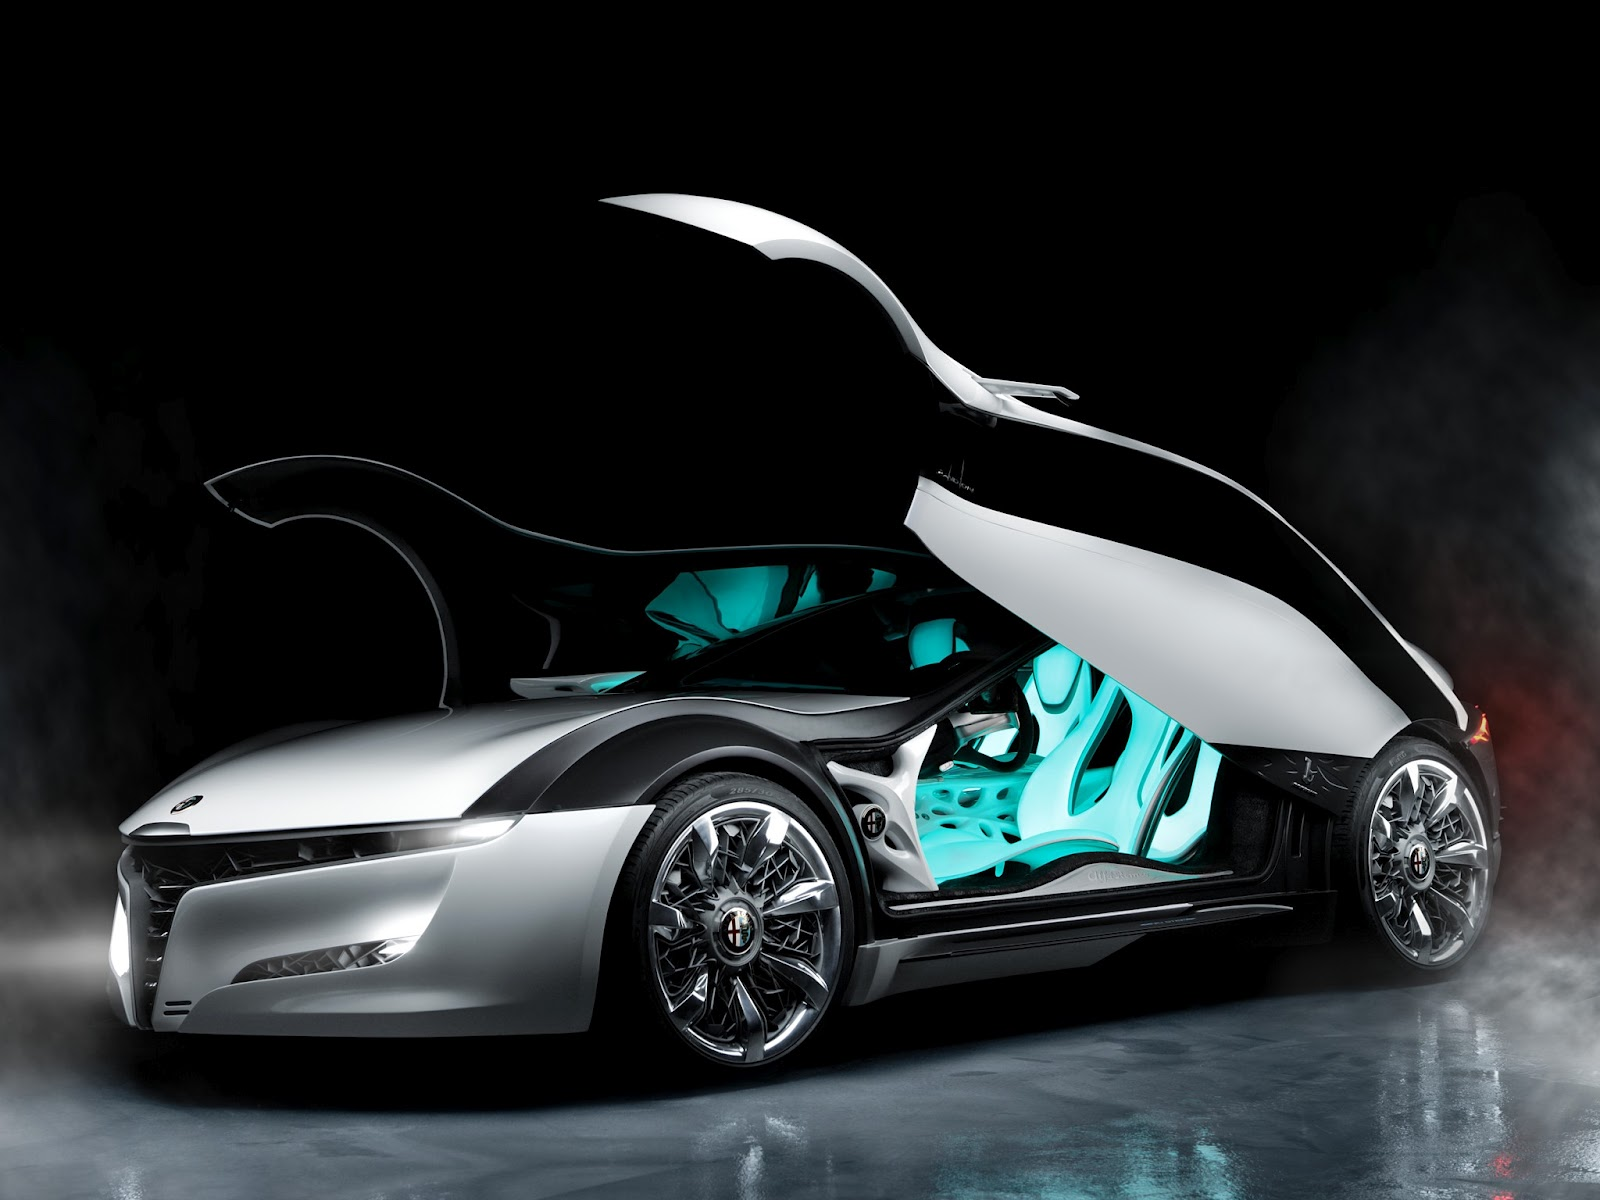 alfa romeo pandion concept car hd wallpaper carwallbase.blo.com